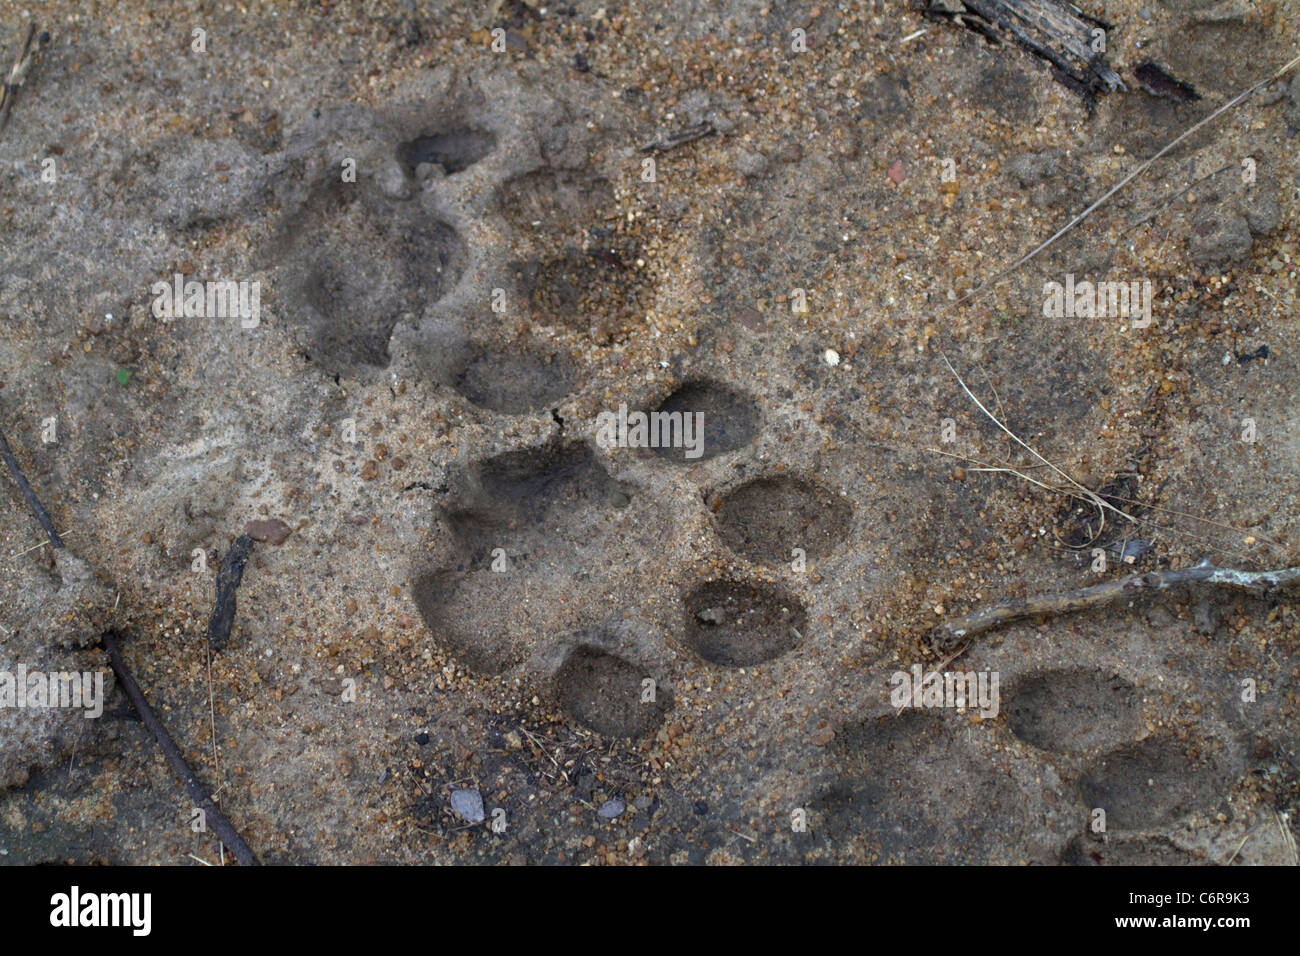 Lion tracks in soft sand - Stock Image